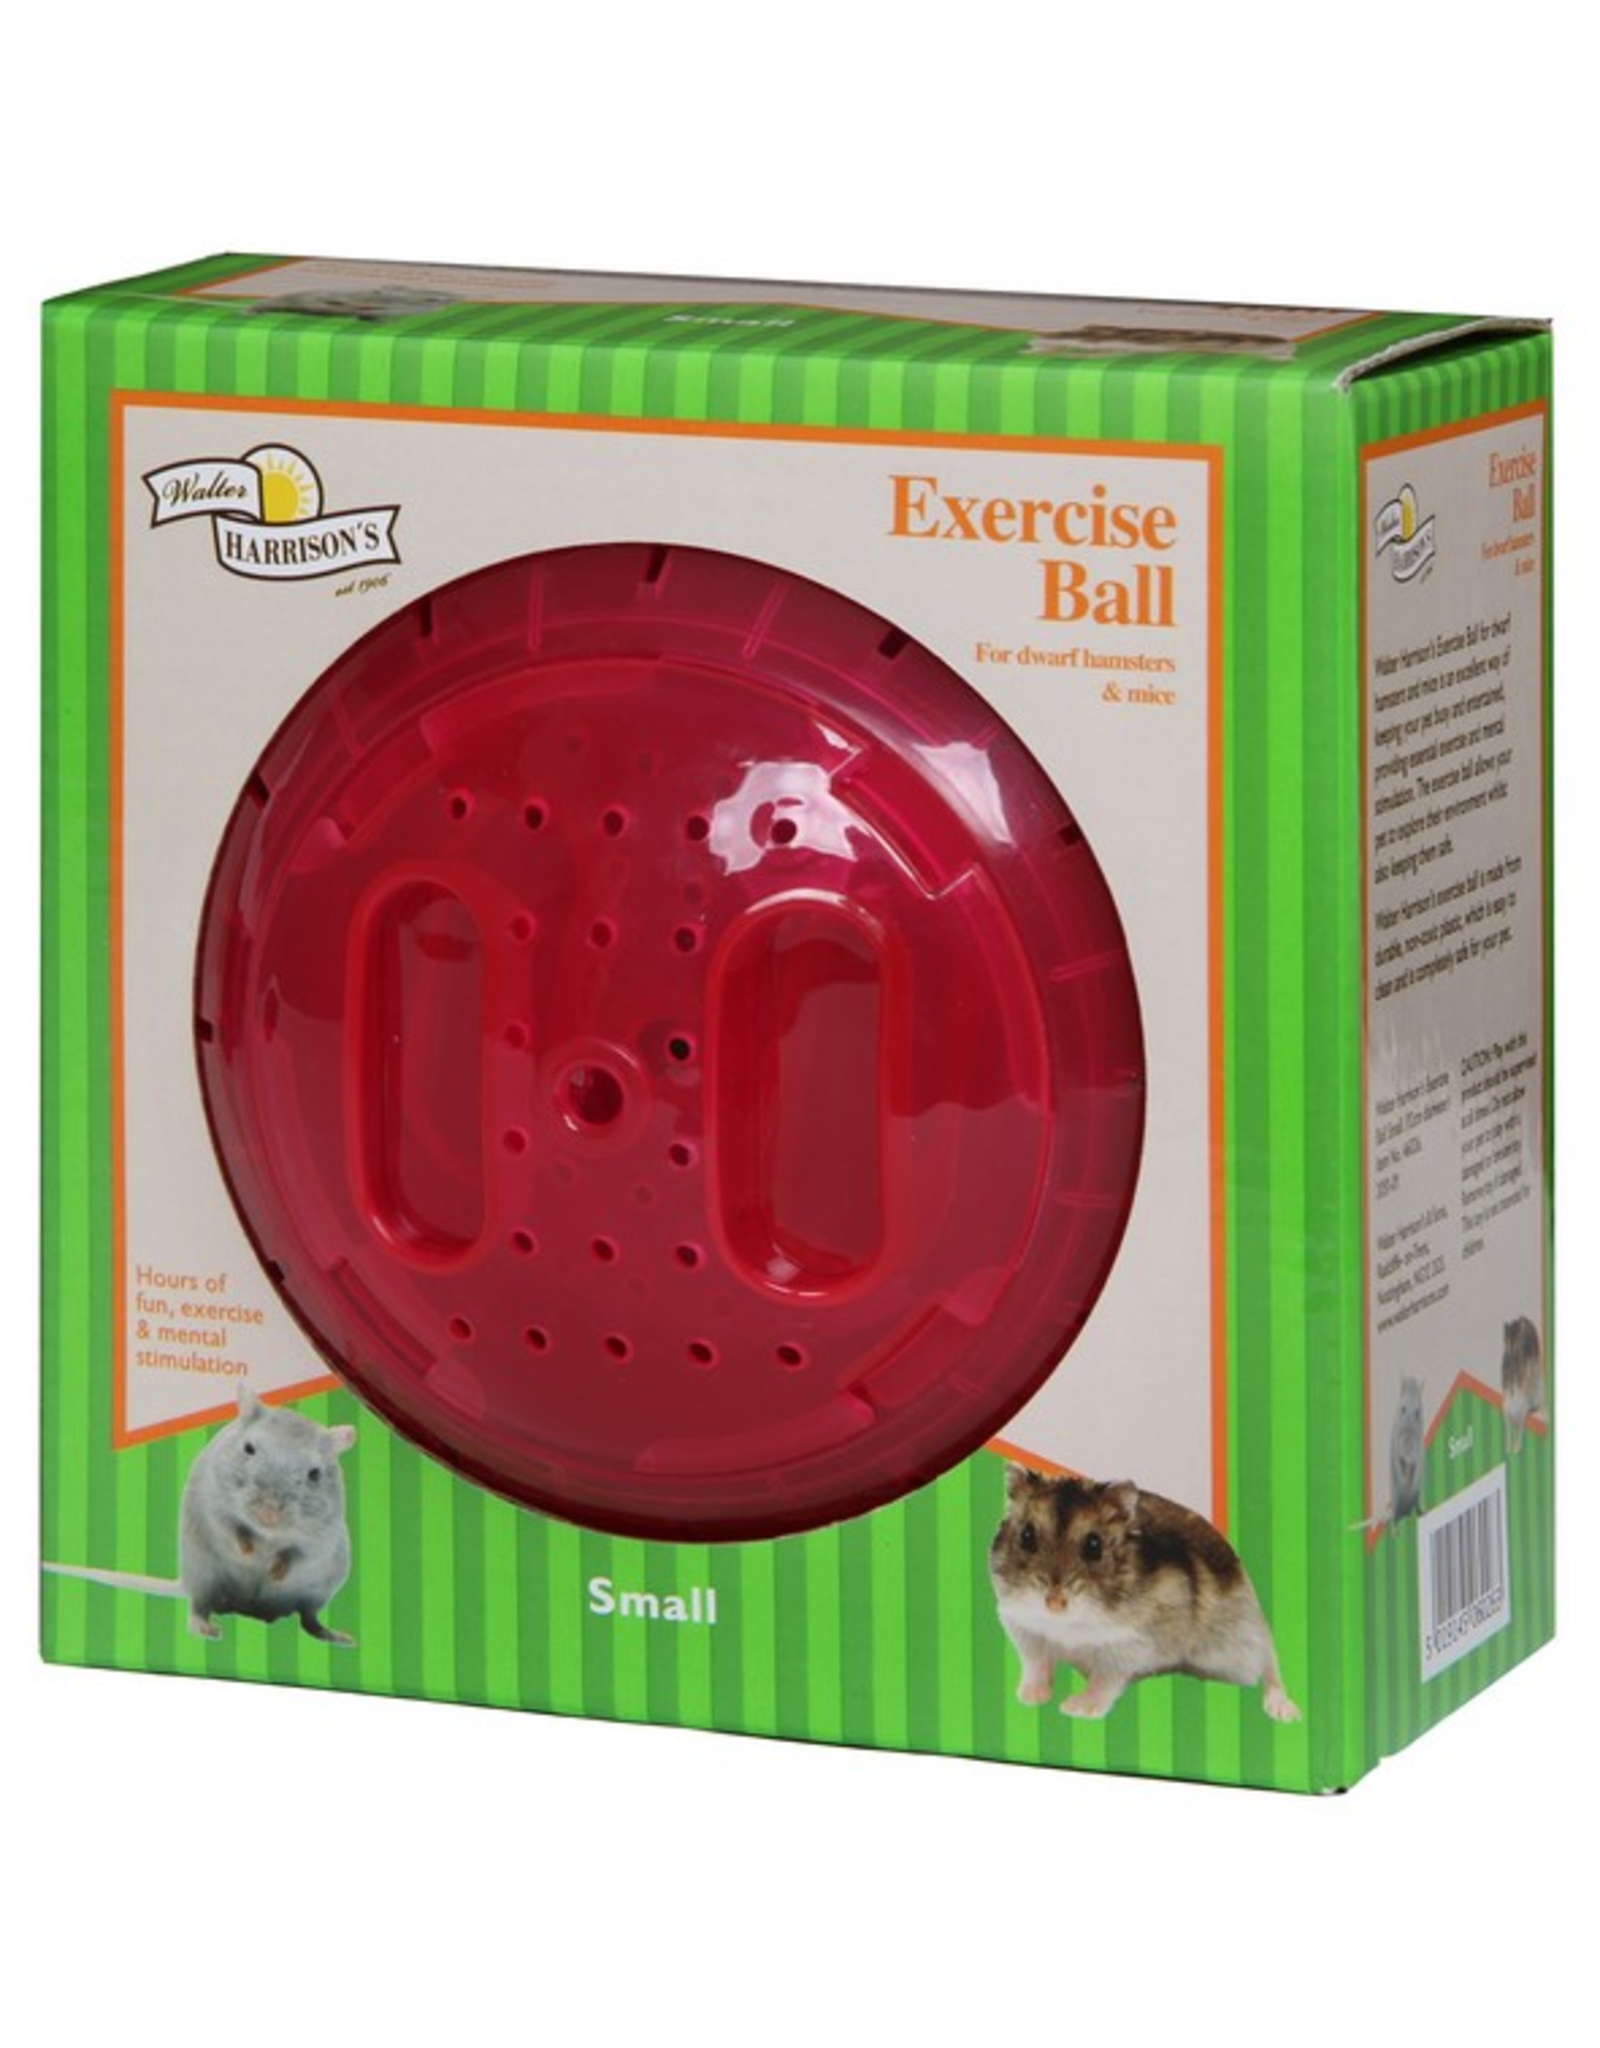 Harrison's Harrisons Exercise Ball Small